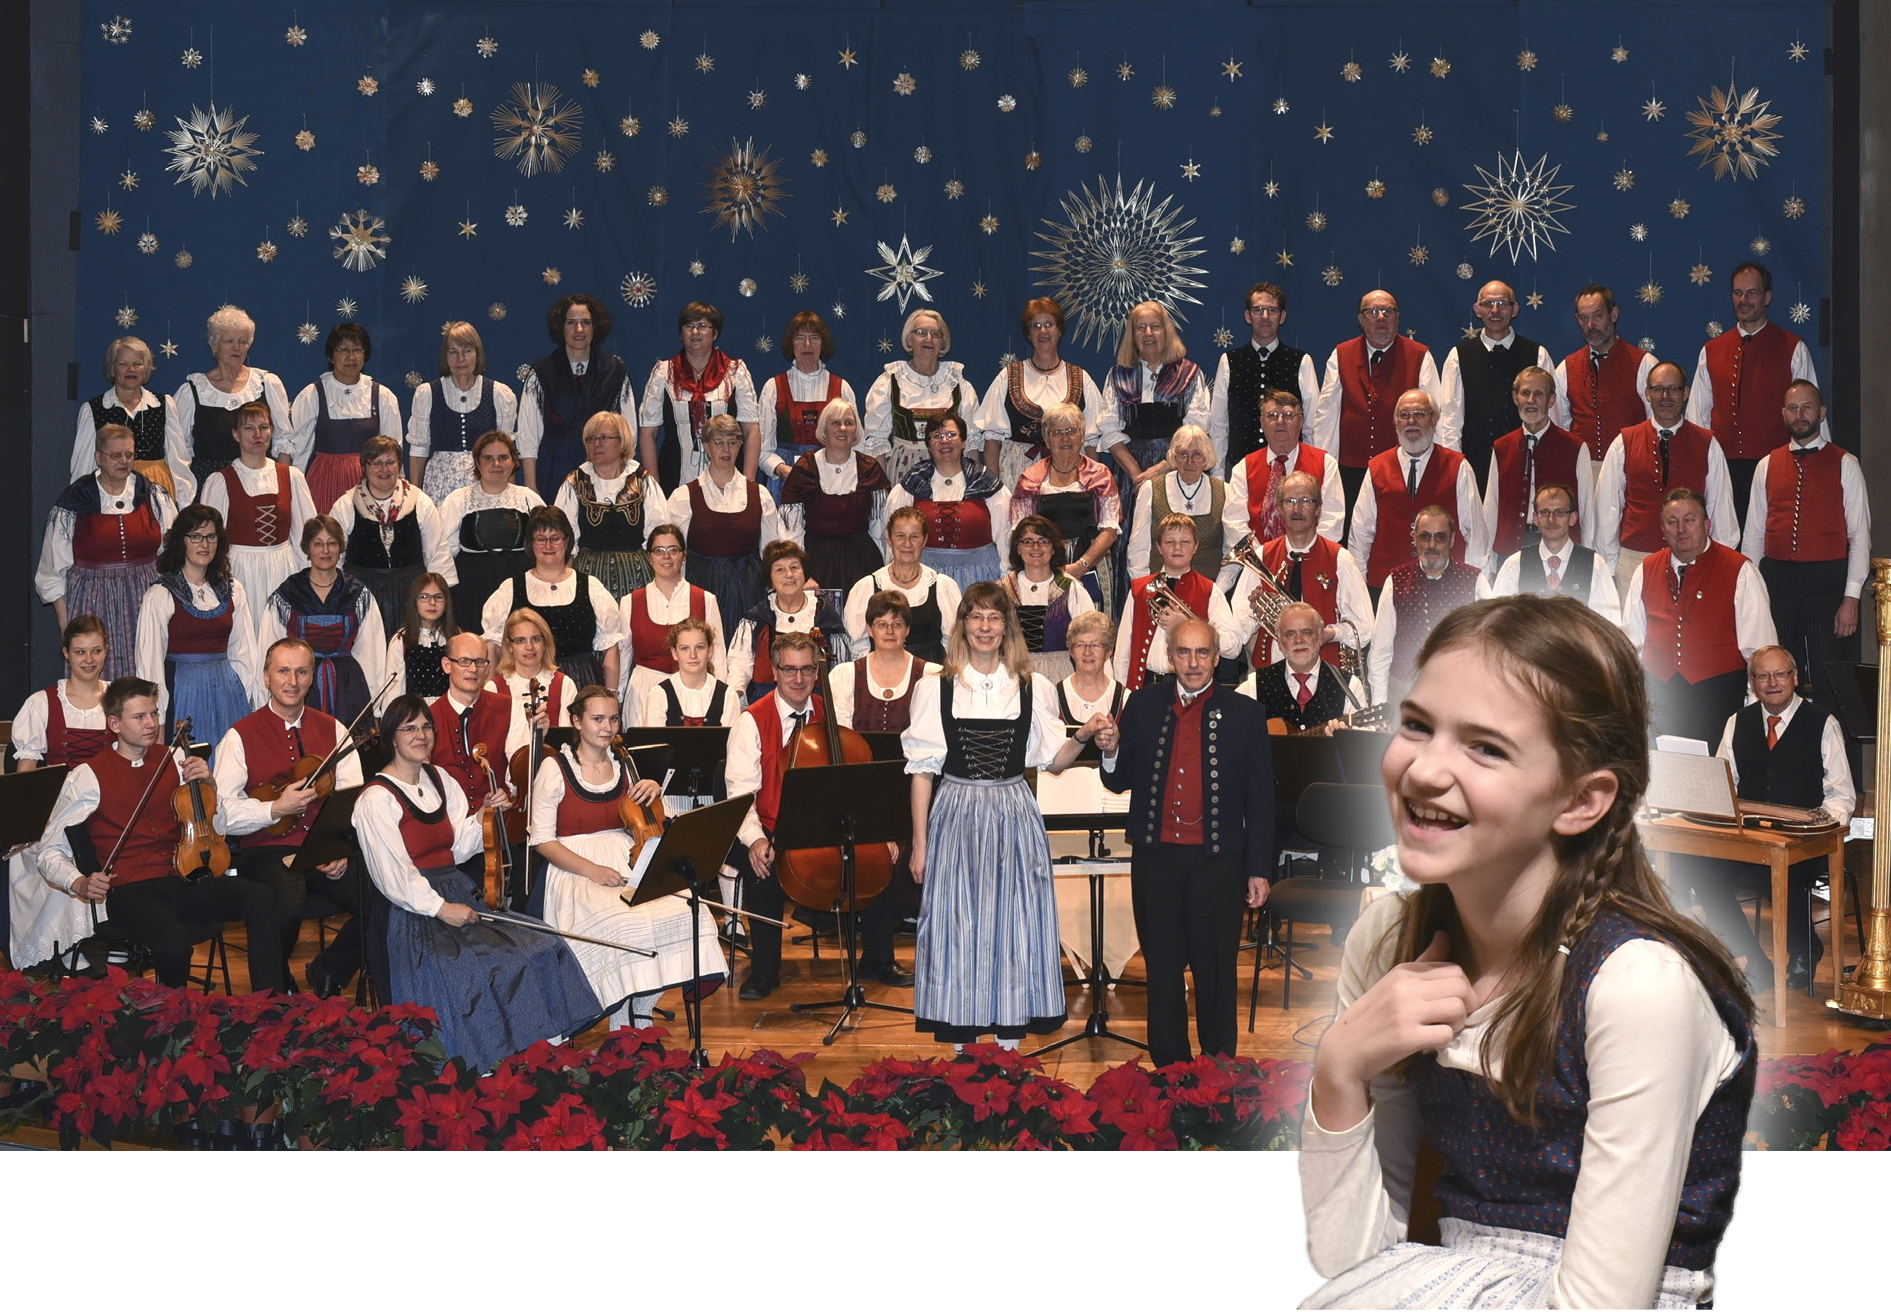 Adventskonzert Stuttgarter Advents Singen